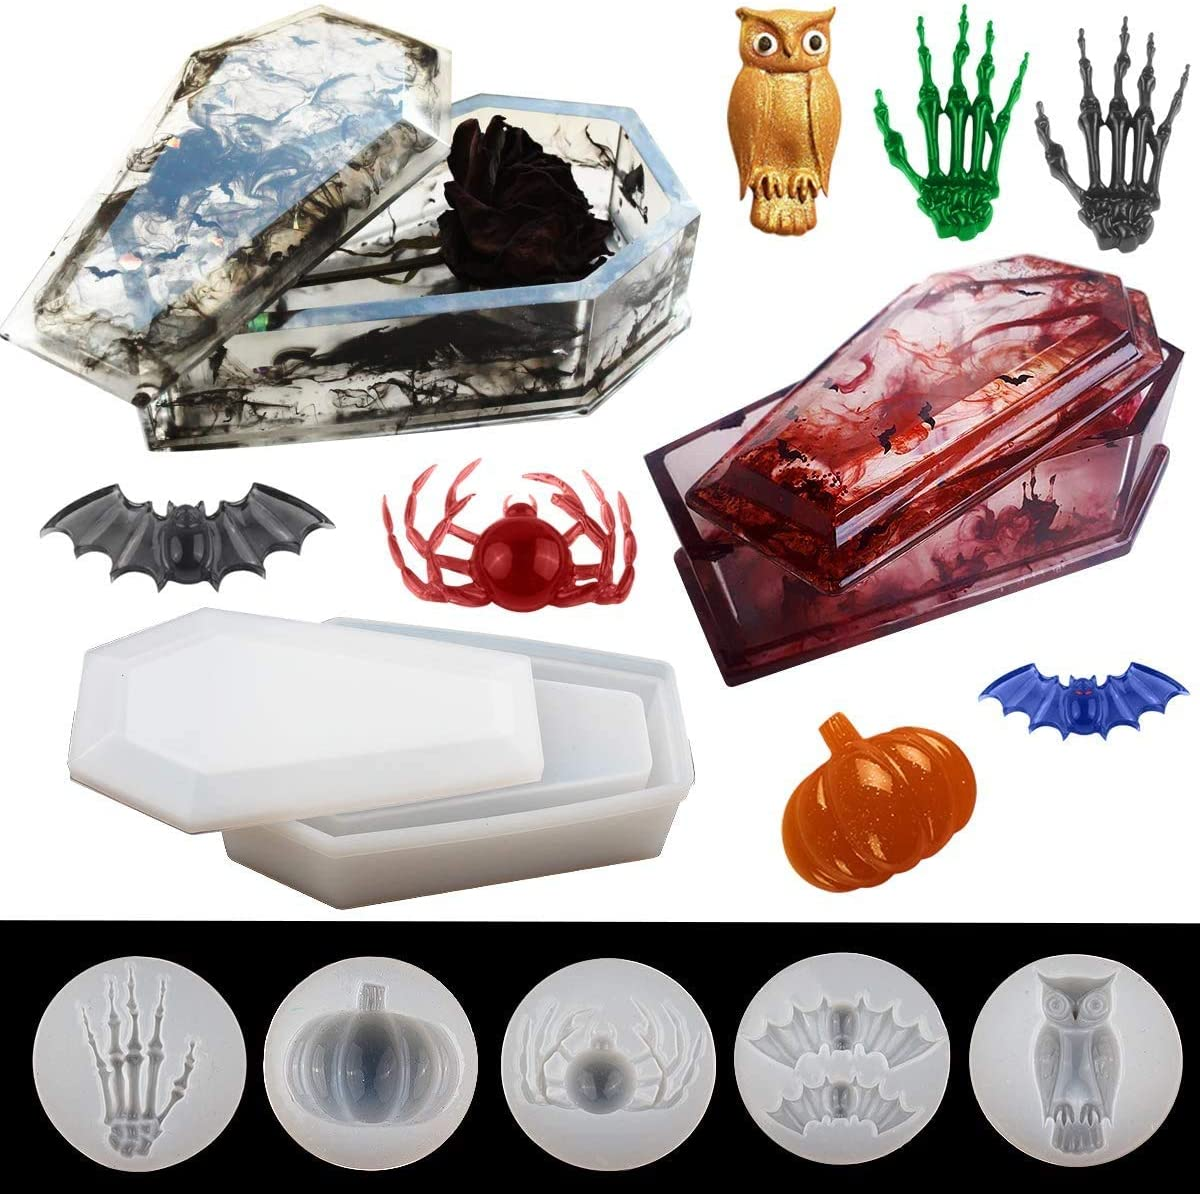 DIY Roll Tray Mold Spider Bat Jewelry Mold for Resin Casting Skeleton Hand Pumpkin 5-Piece Silicone Resin Mold Resin Coffin Mold